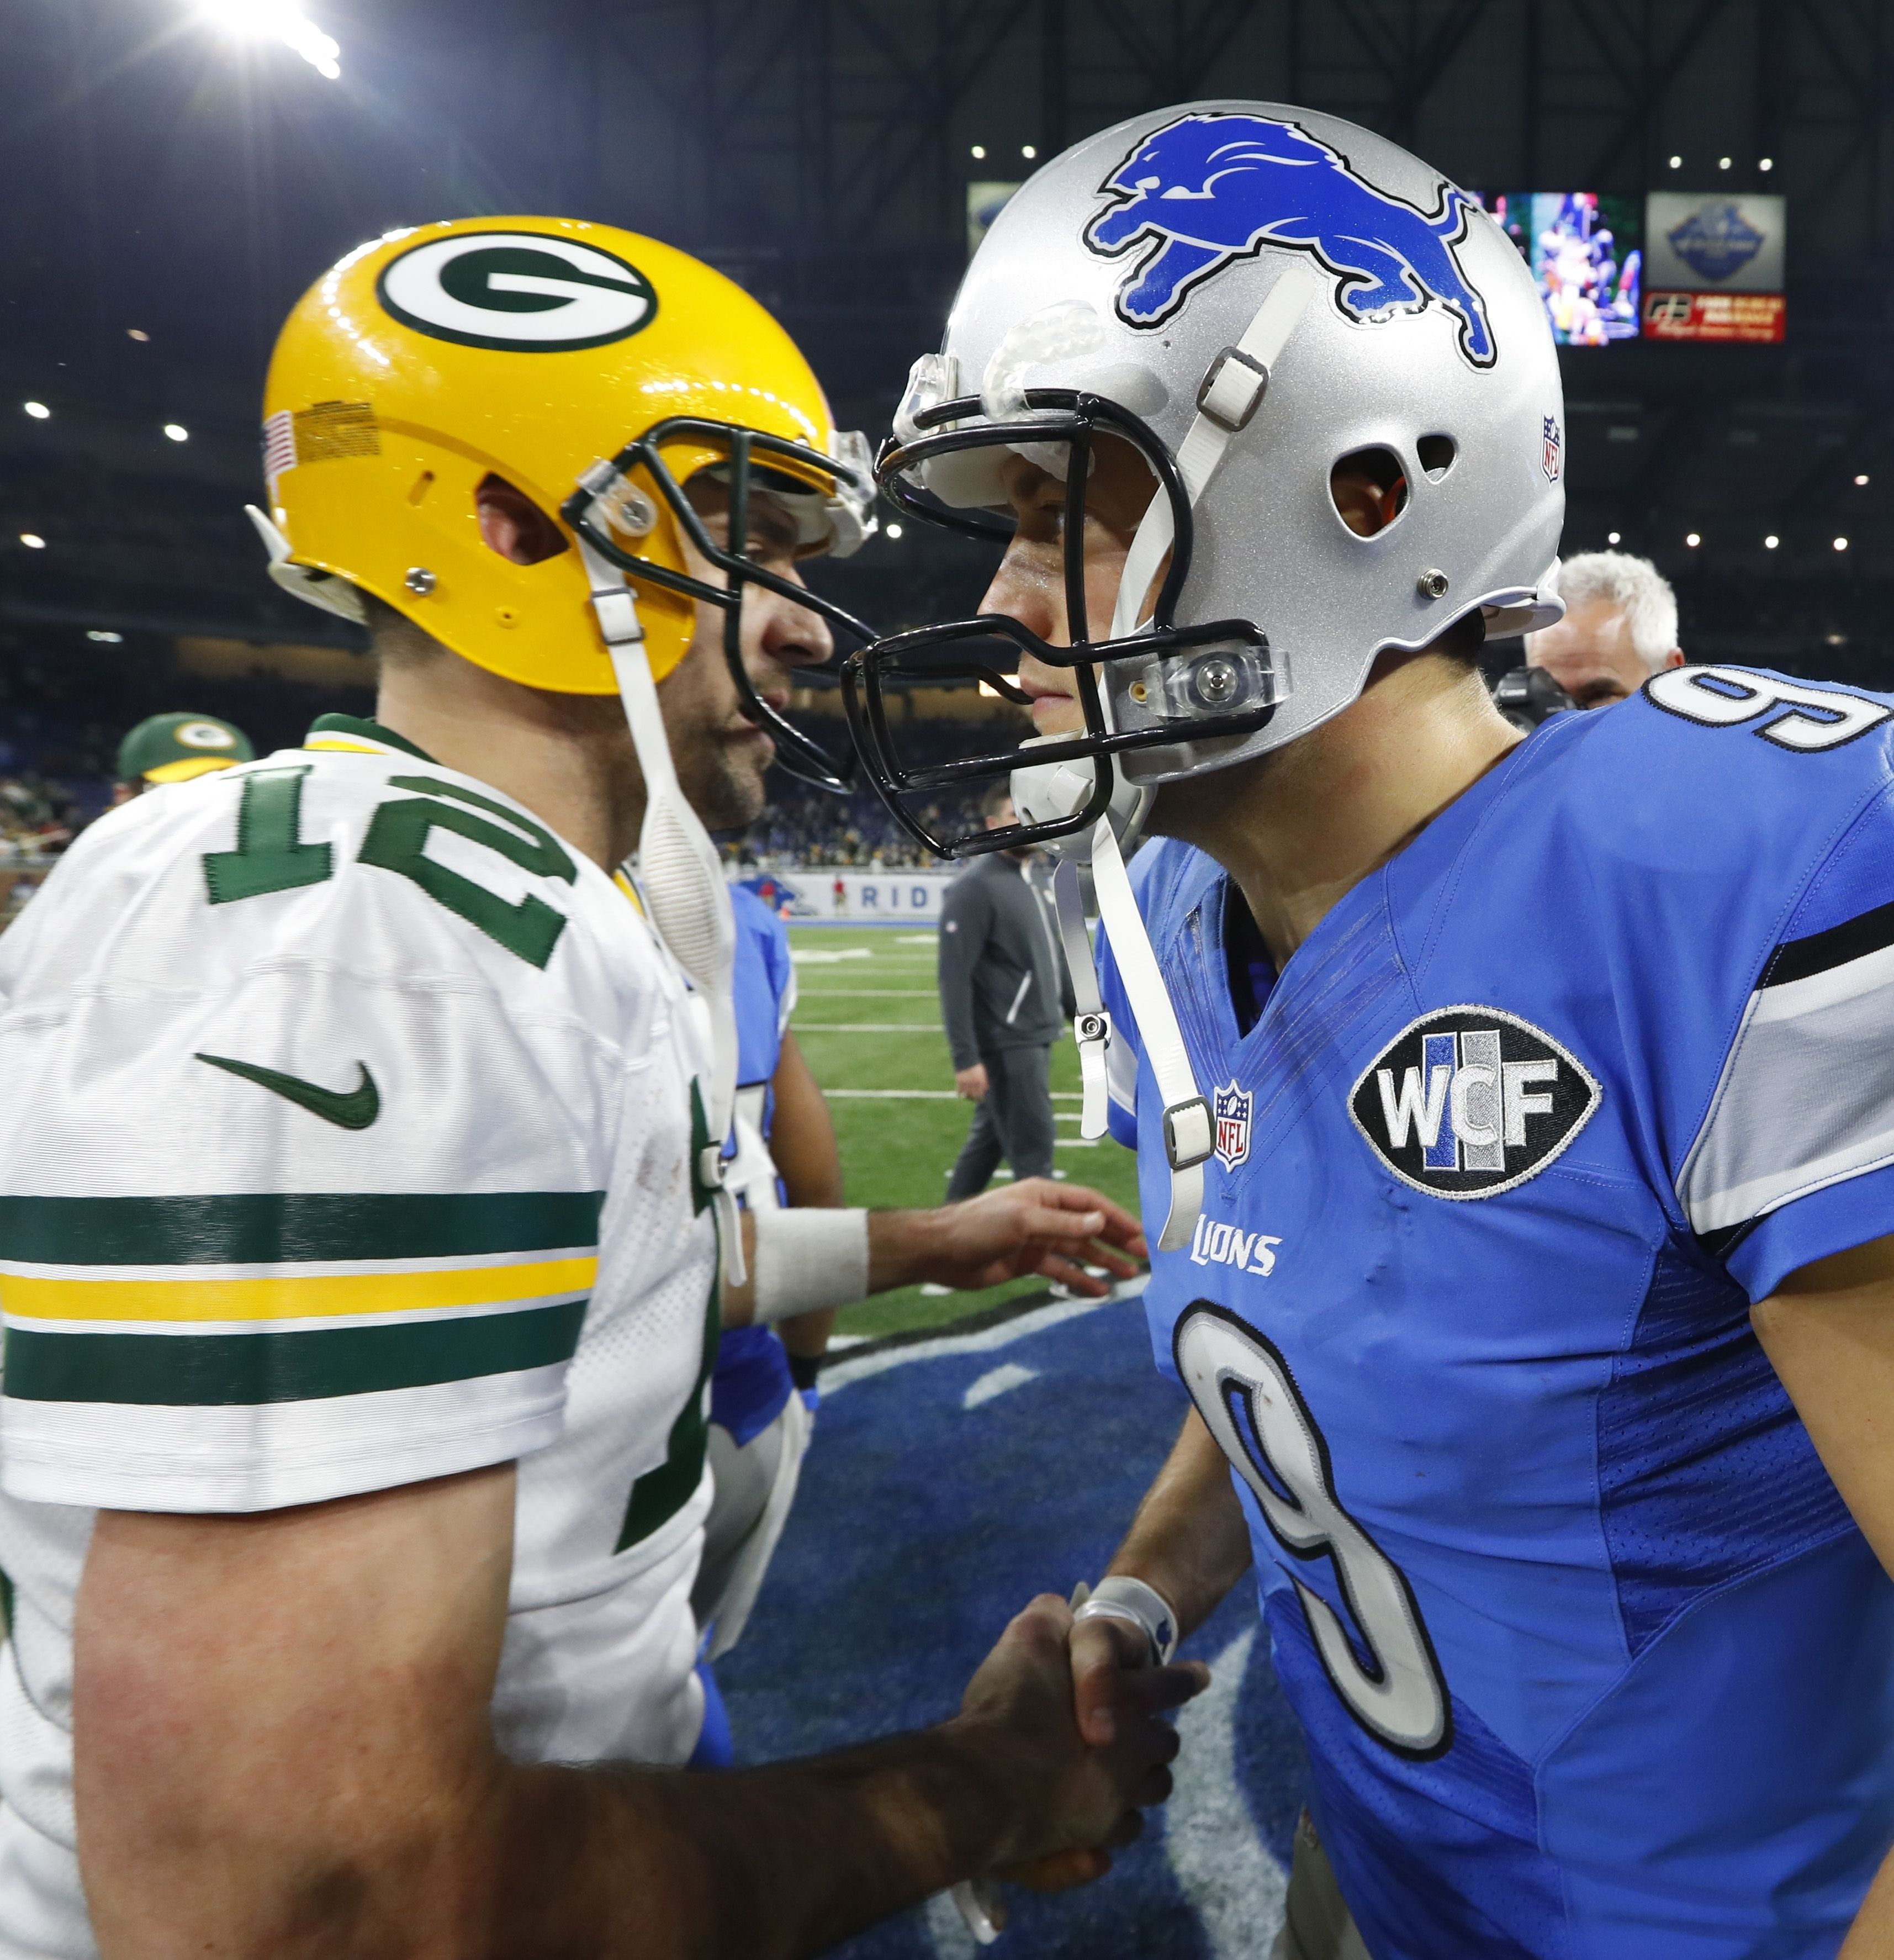 Two Of The Best In The Game Meet After Week 17 Will They Meet Again In The Playoffs Ap Sancya Football National Football League National Football